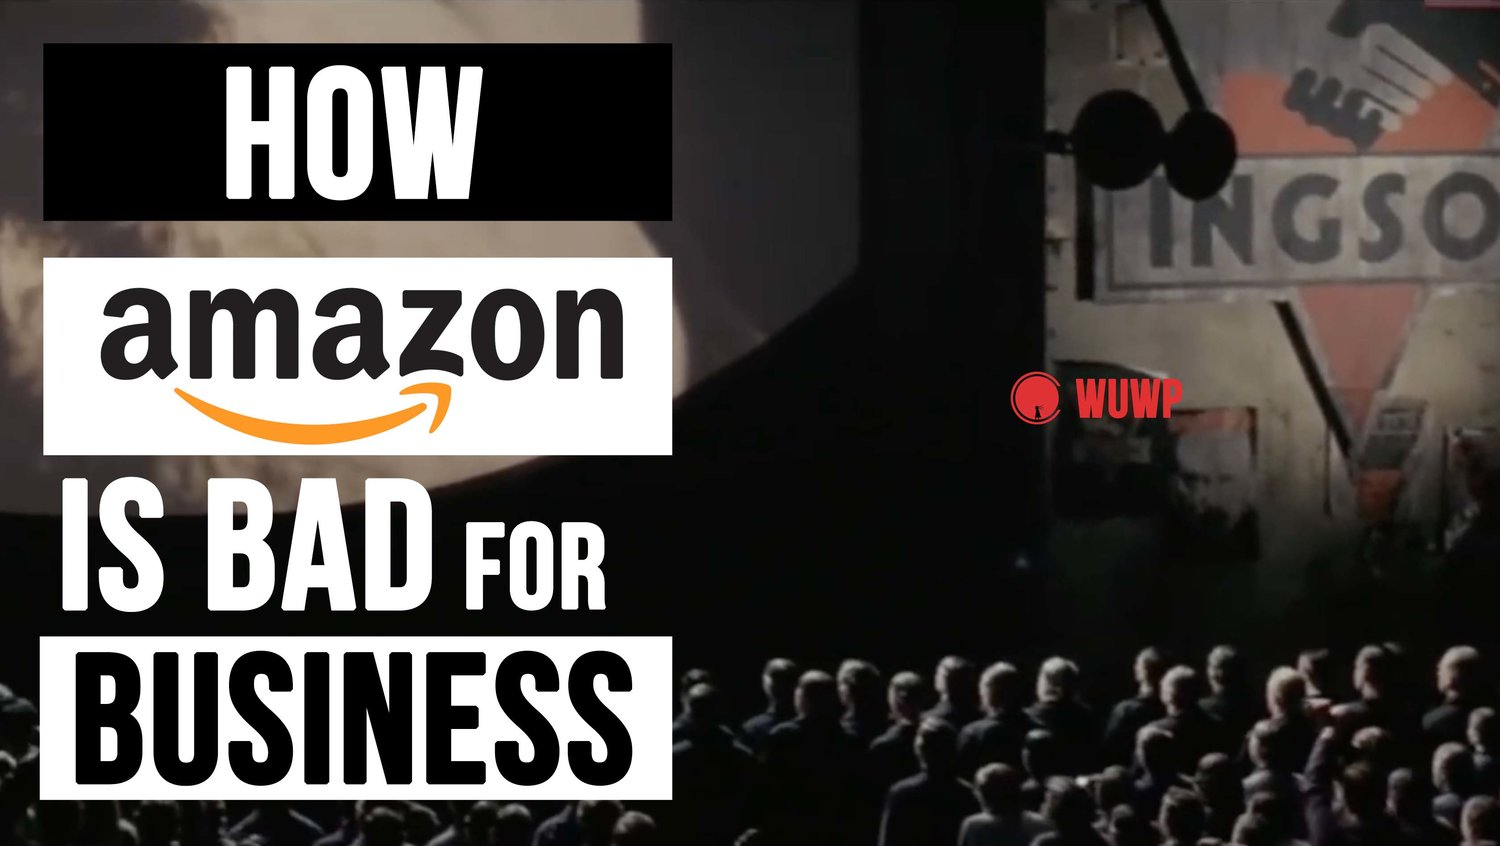 HOW Amazon is Bad for Business